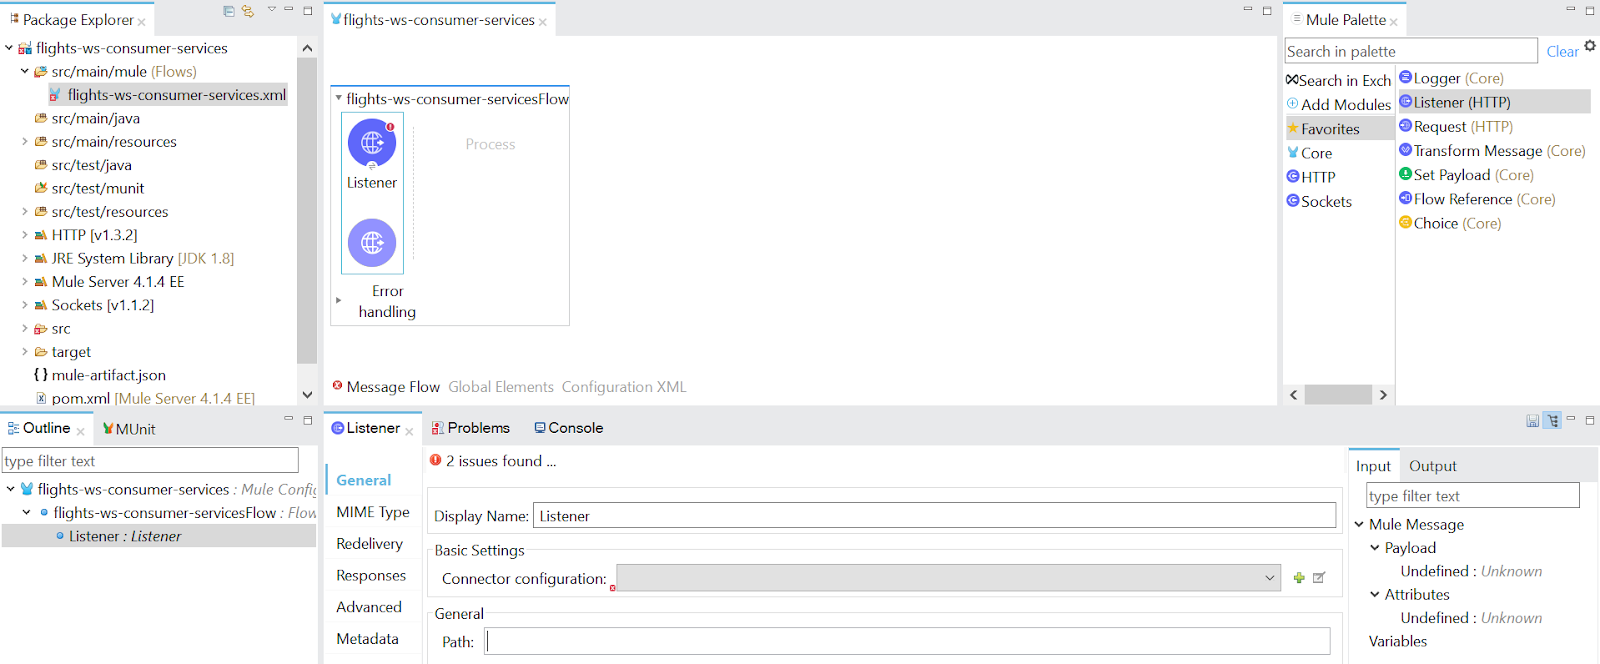 Consuming SOAP Web Services Using MuleSoft 4